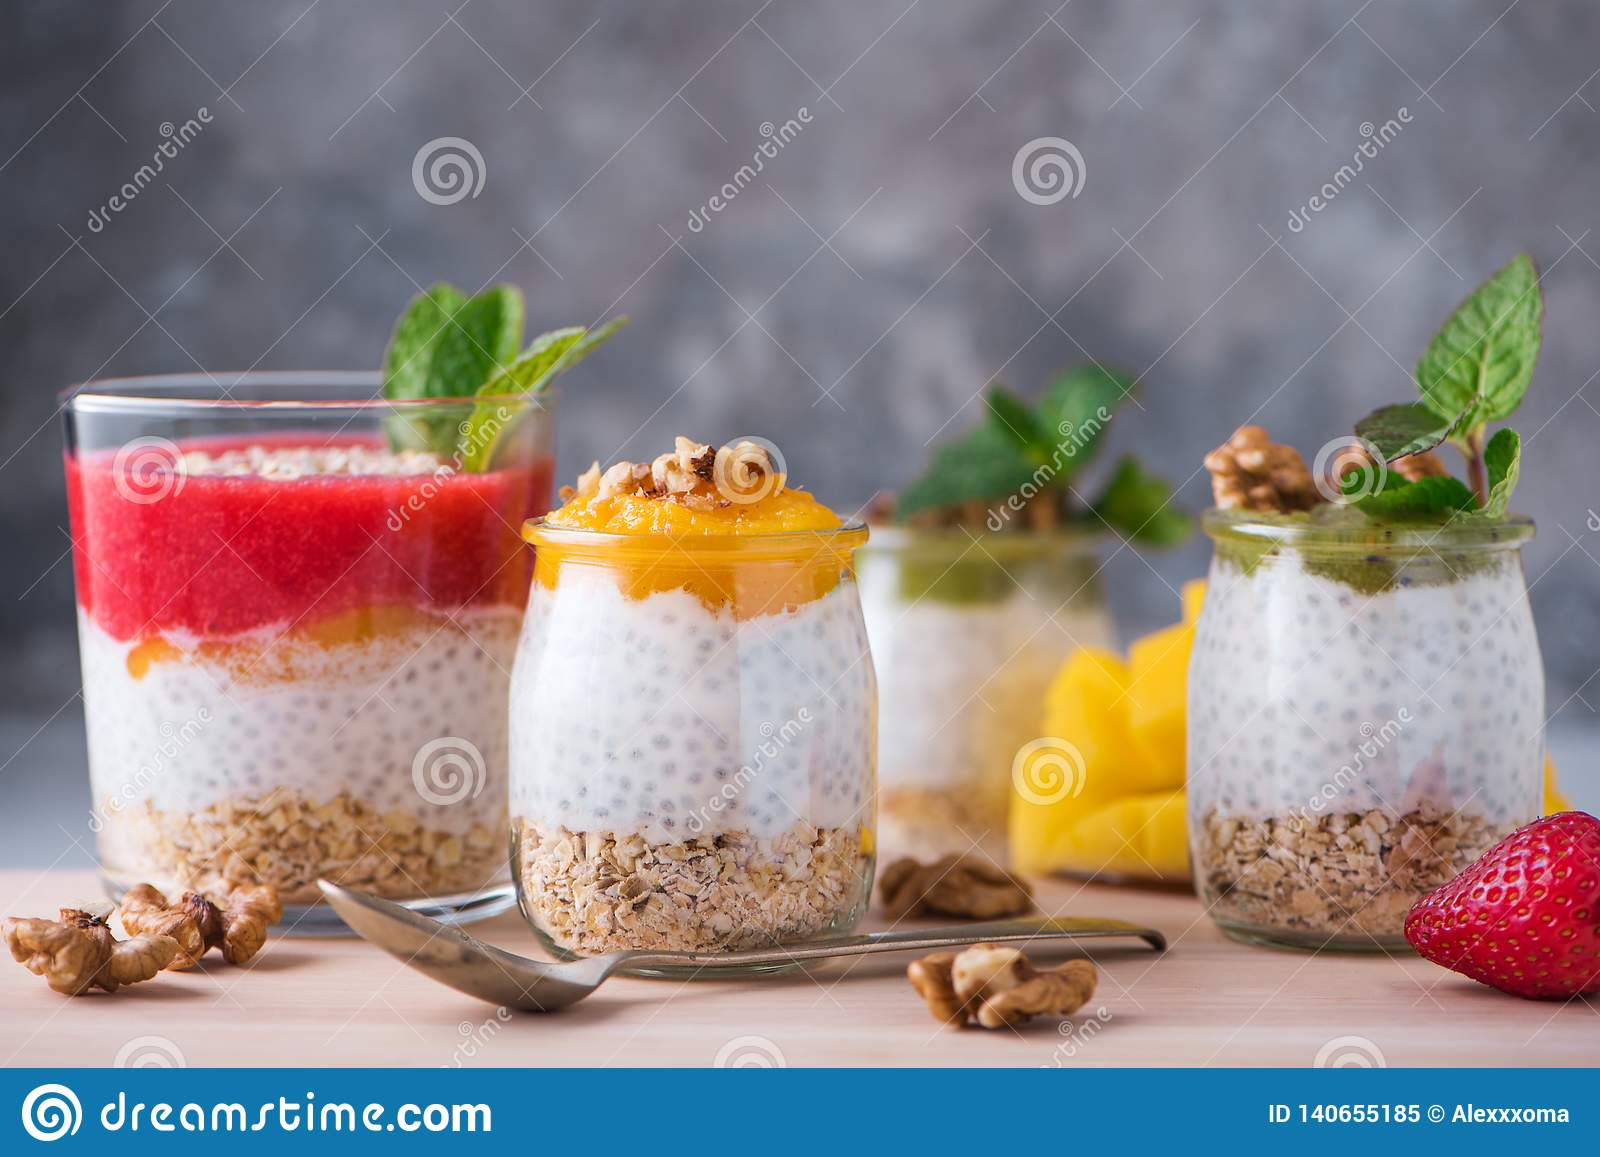 Homemade pudding of Chia seeds and almond milk with cereals and puree of kiwi, strawberry and mango with walnuts and mint in glass